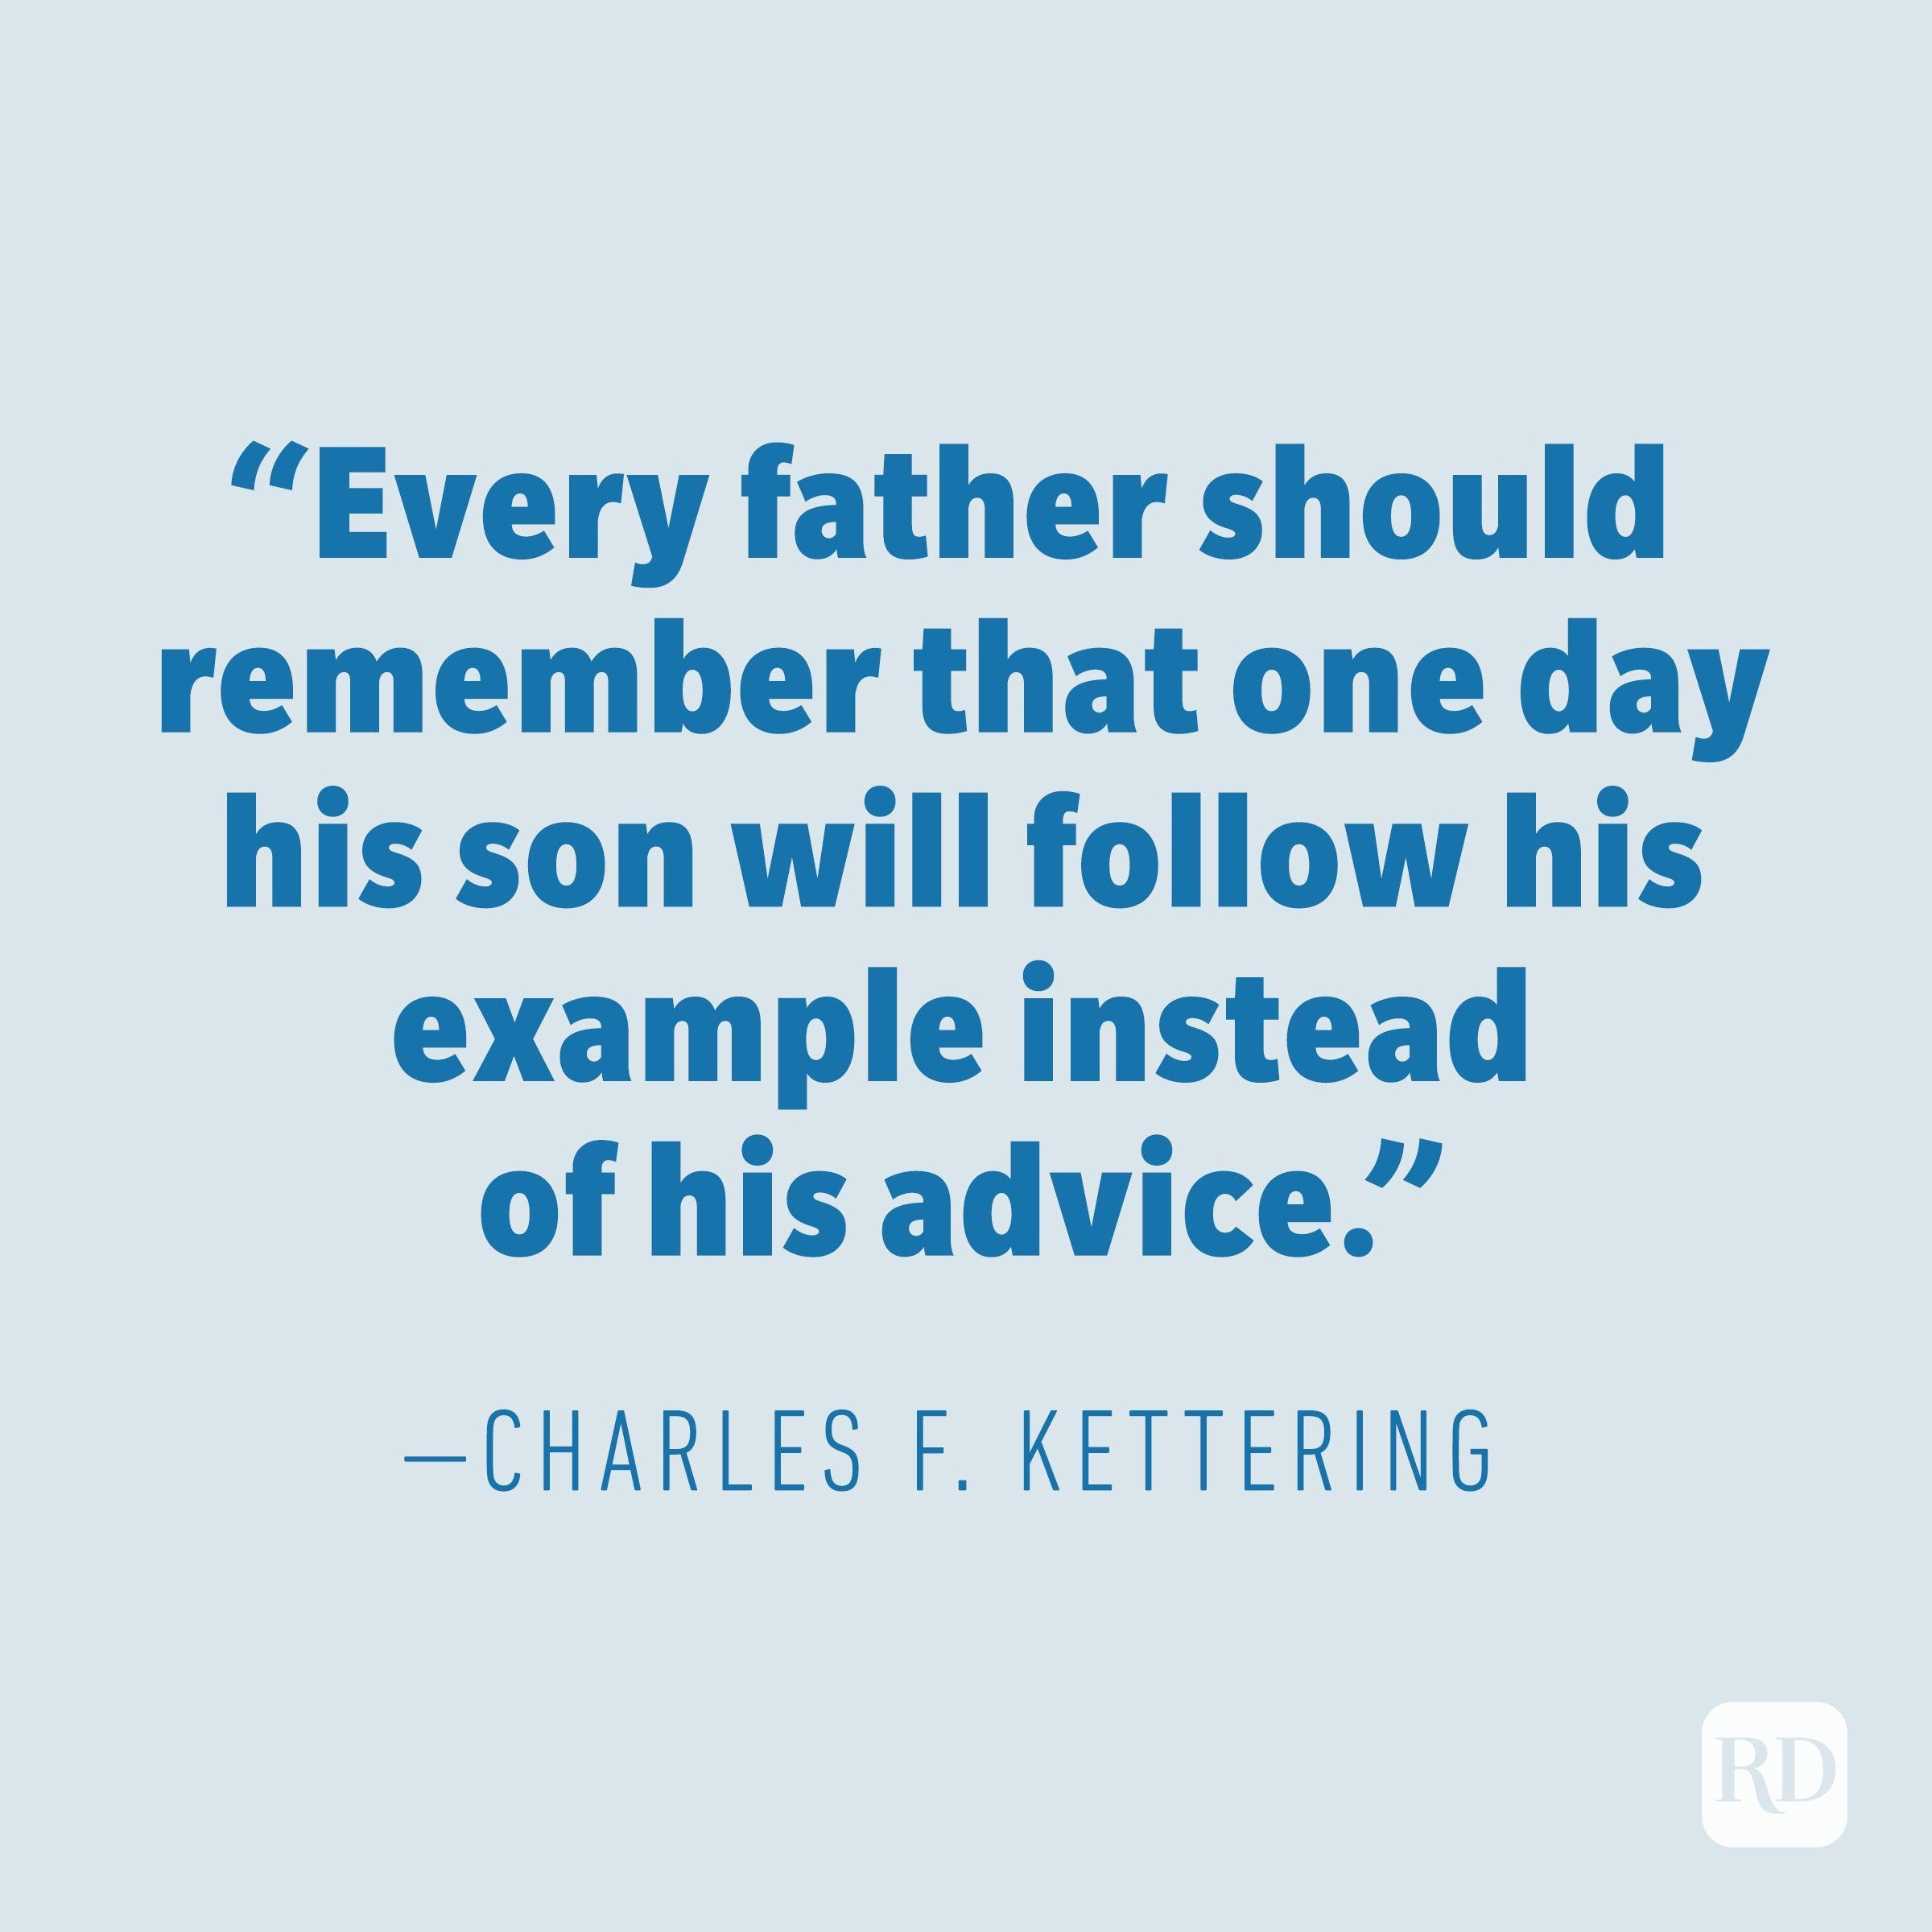 Charles F. Kettering quote